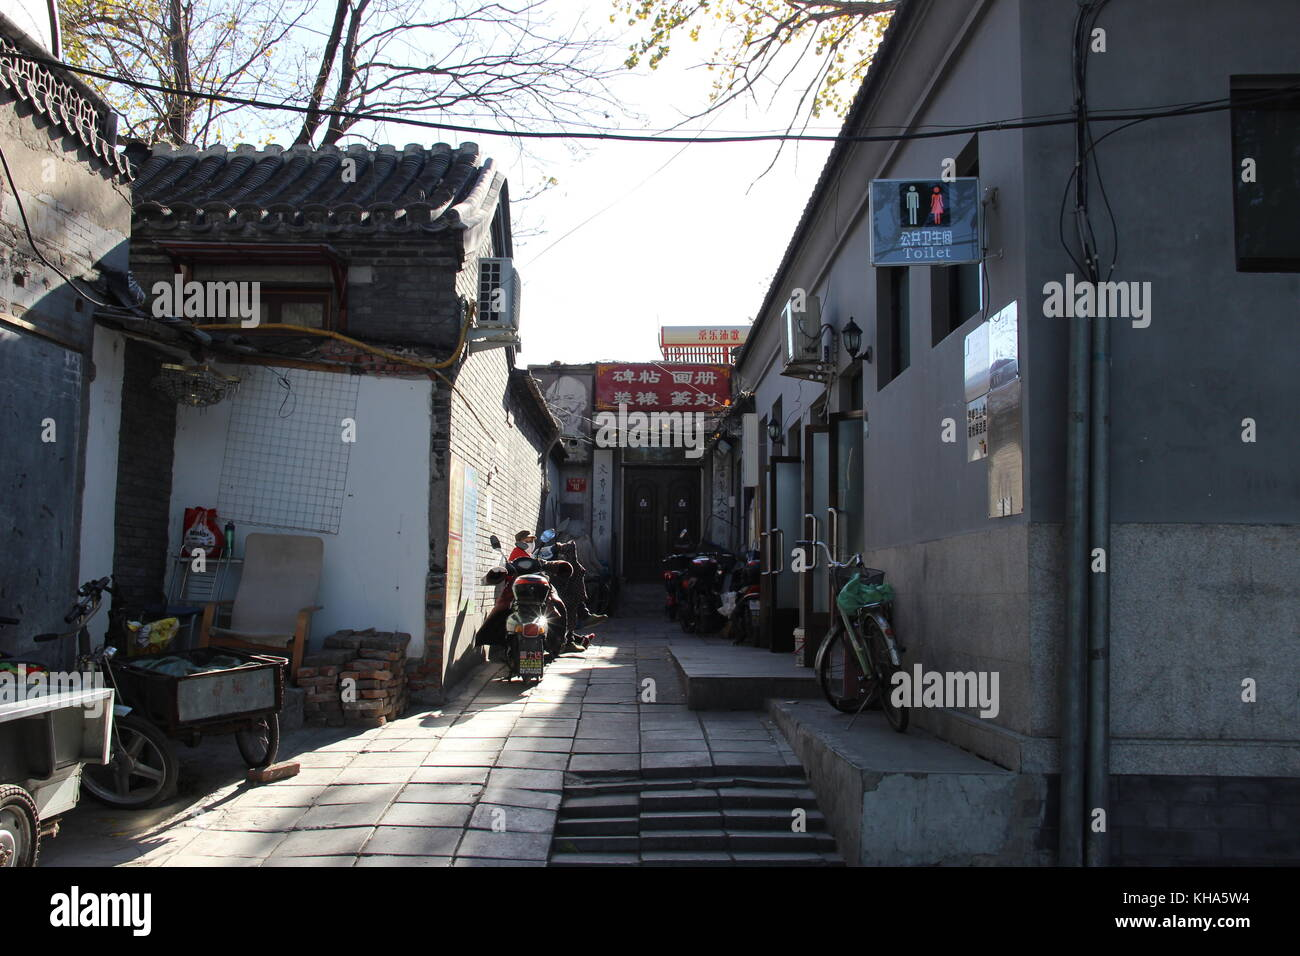 A shop in a hutong alley - Beijing, China Stock Photo